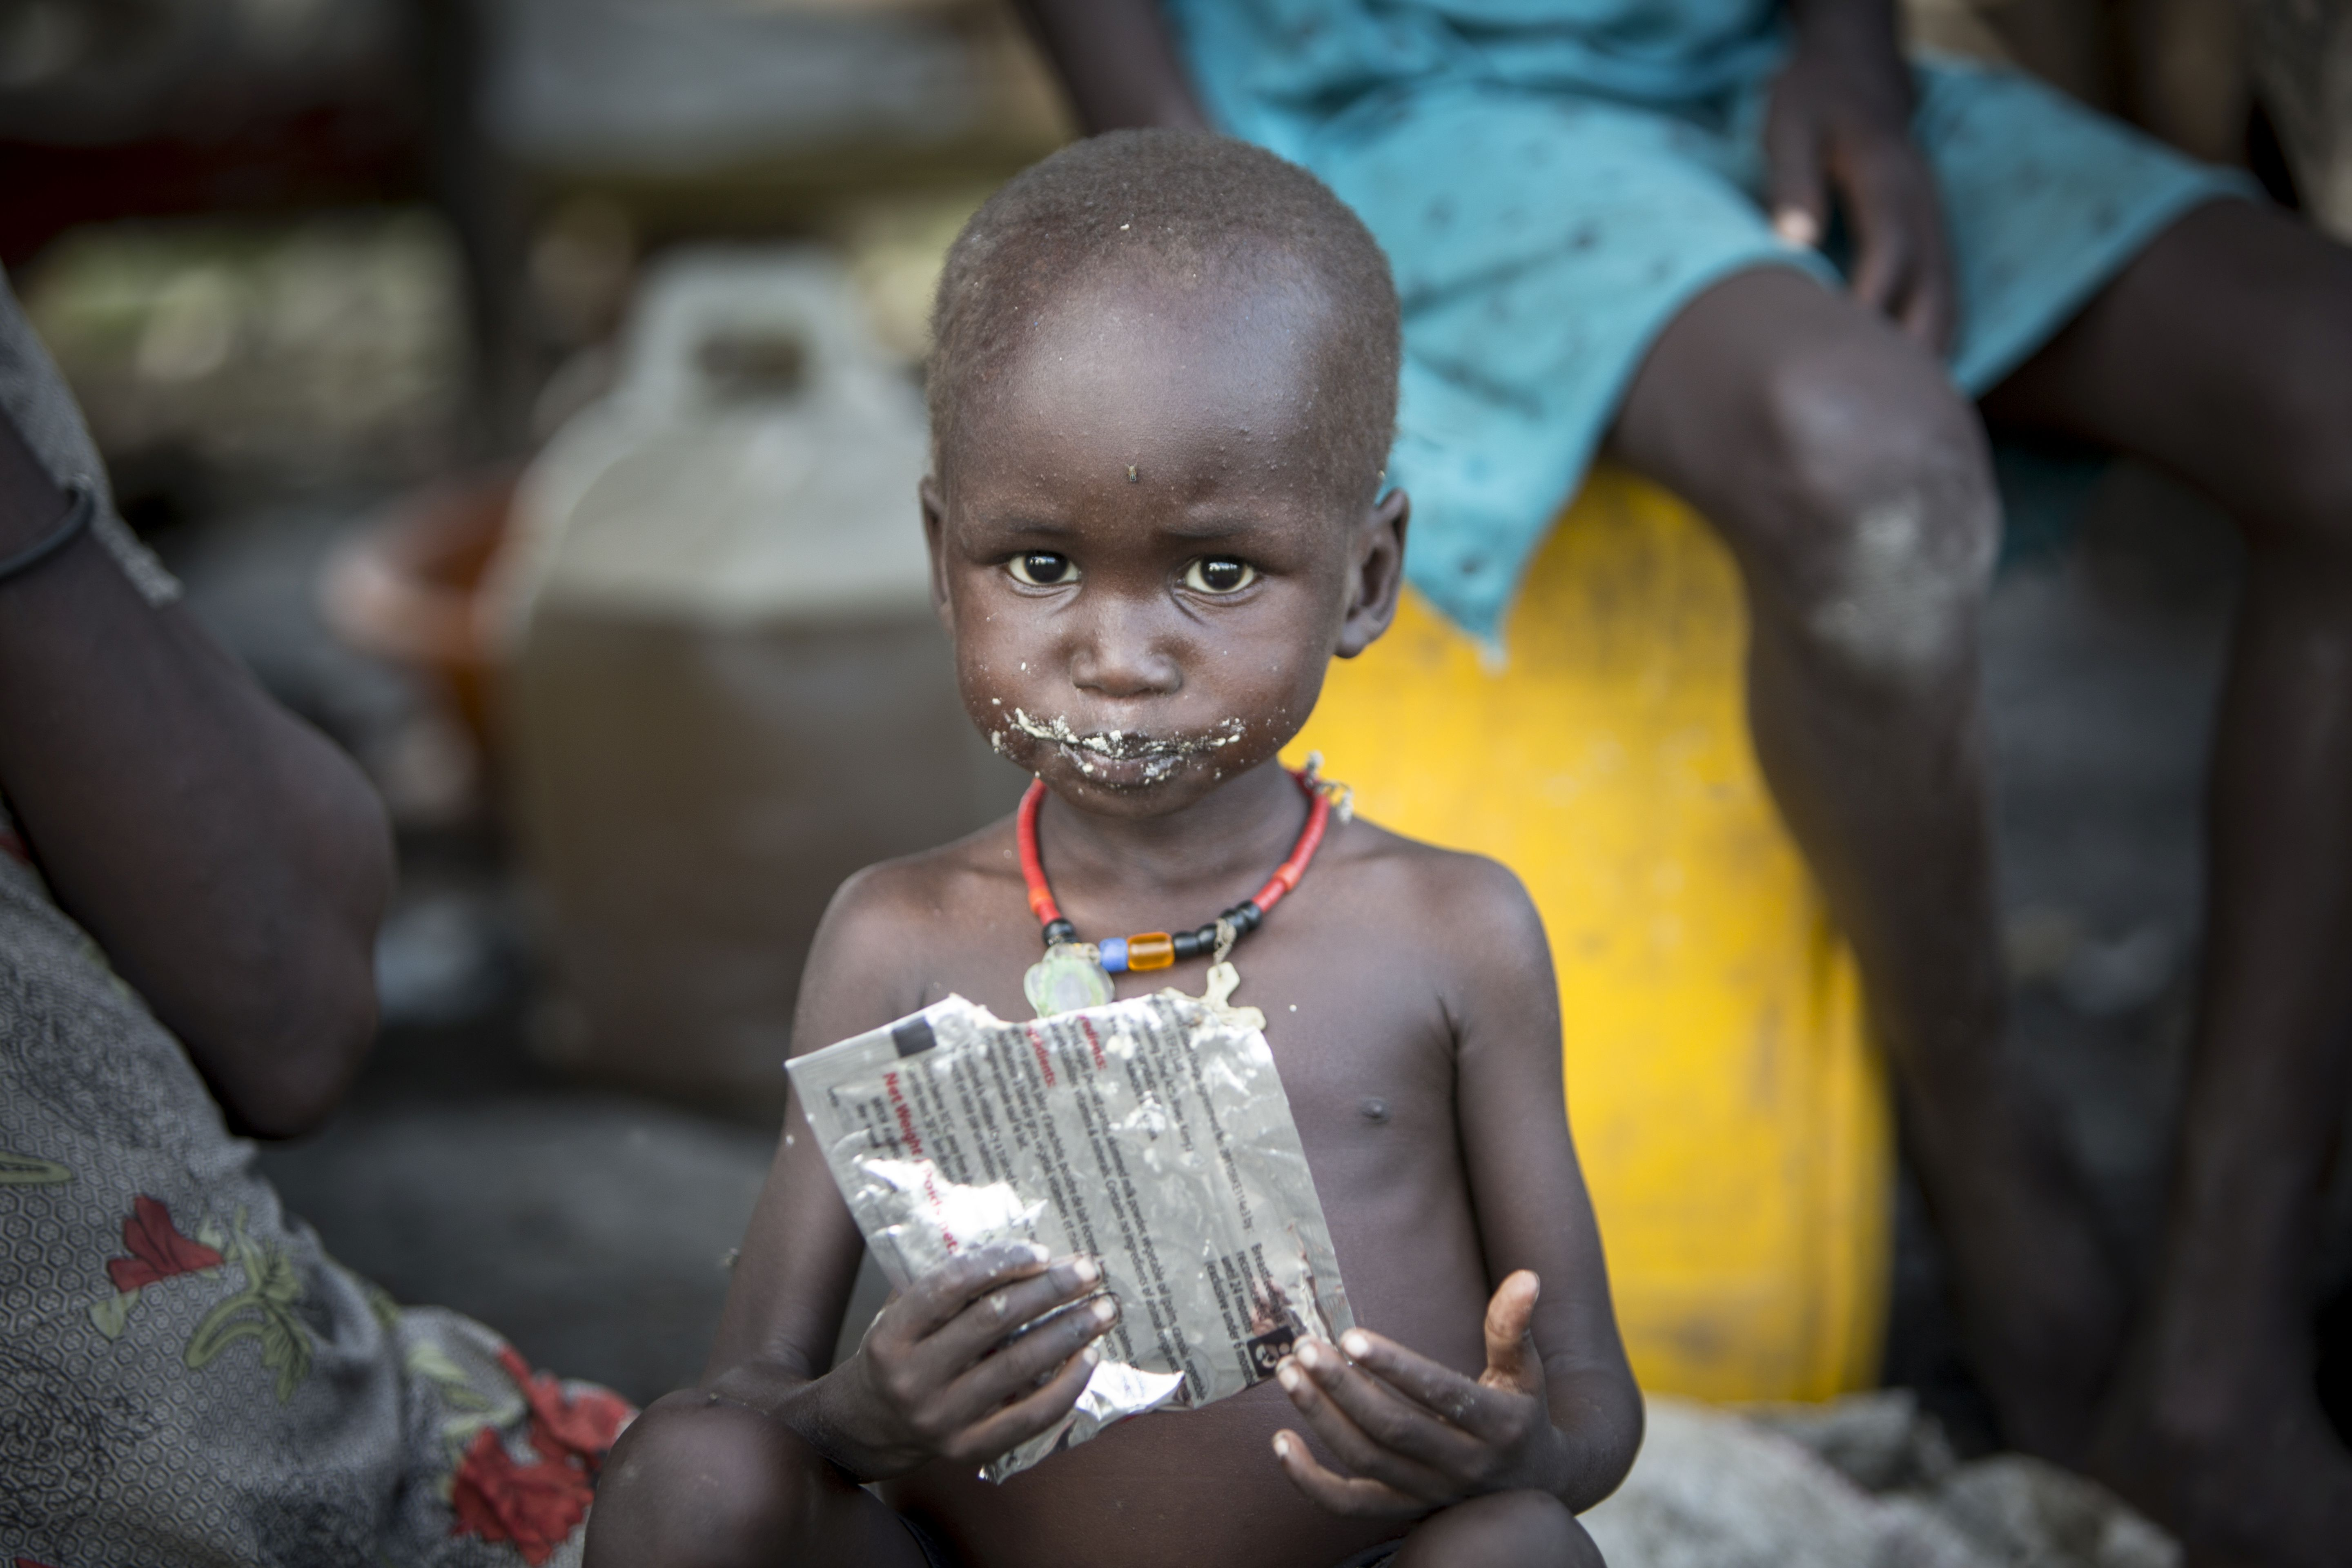 Small dark skinned boy looking into the camera, with a face covered in powder from the small amount of food he had eaten